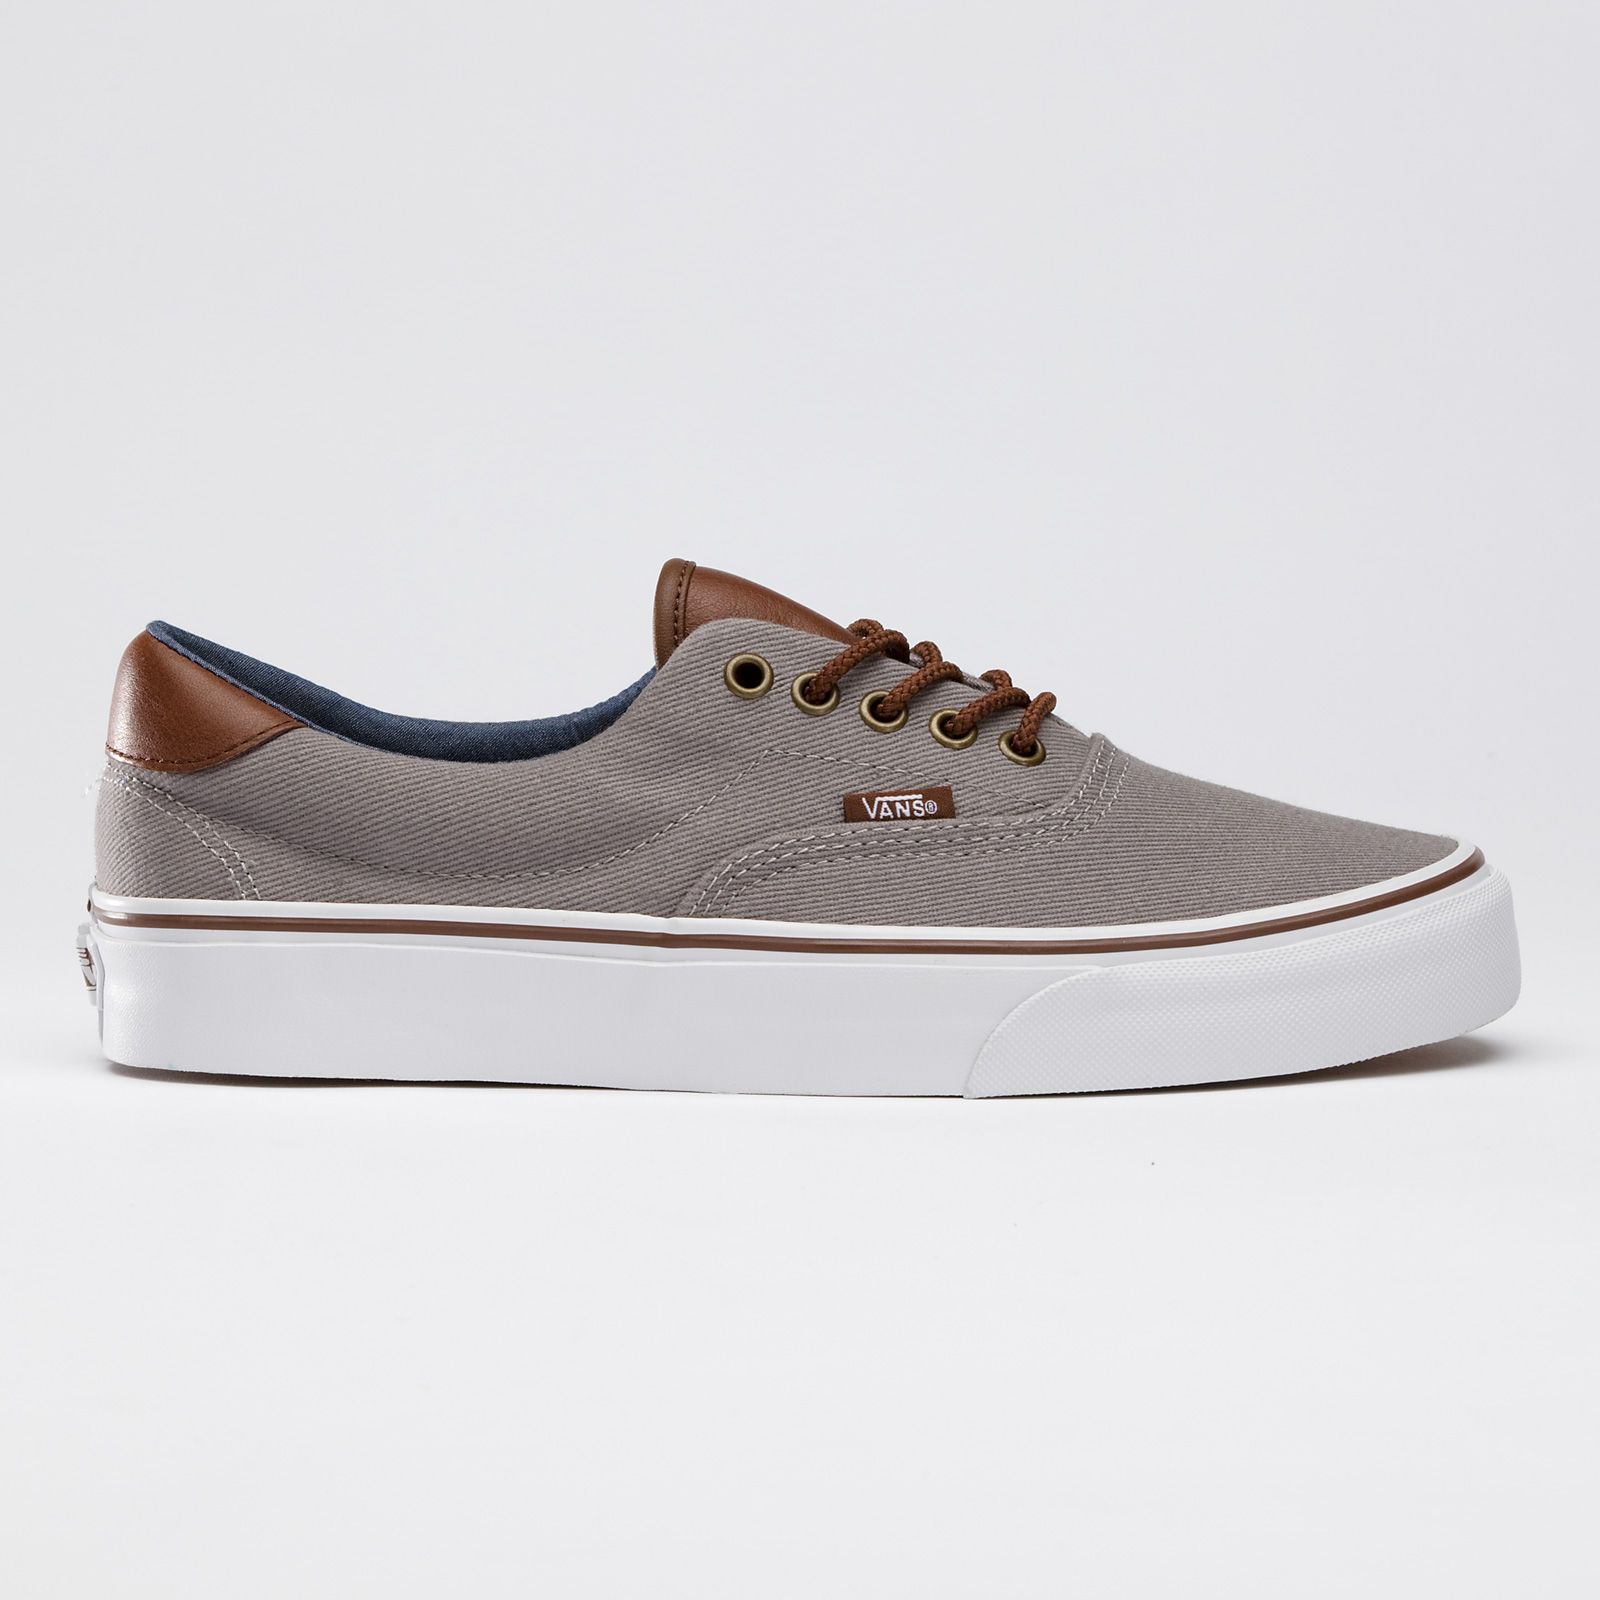 241ed55e6e Vans T L Era 59 - Cloudburst Gray Brunette Brown